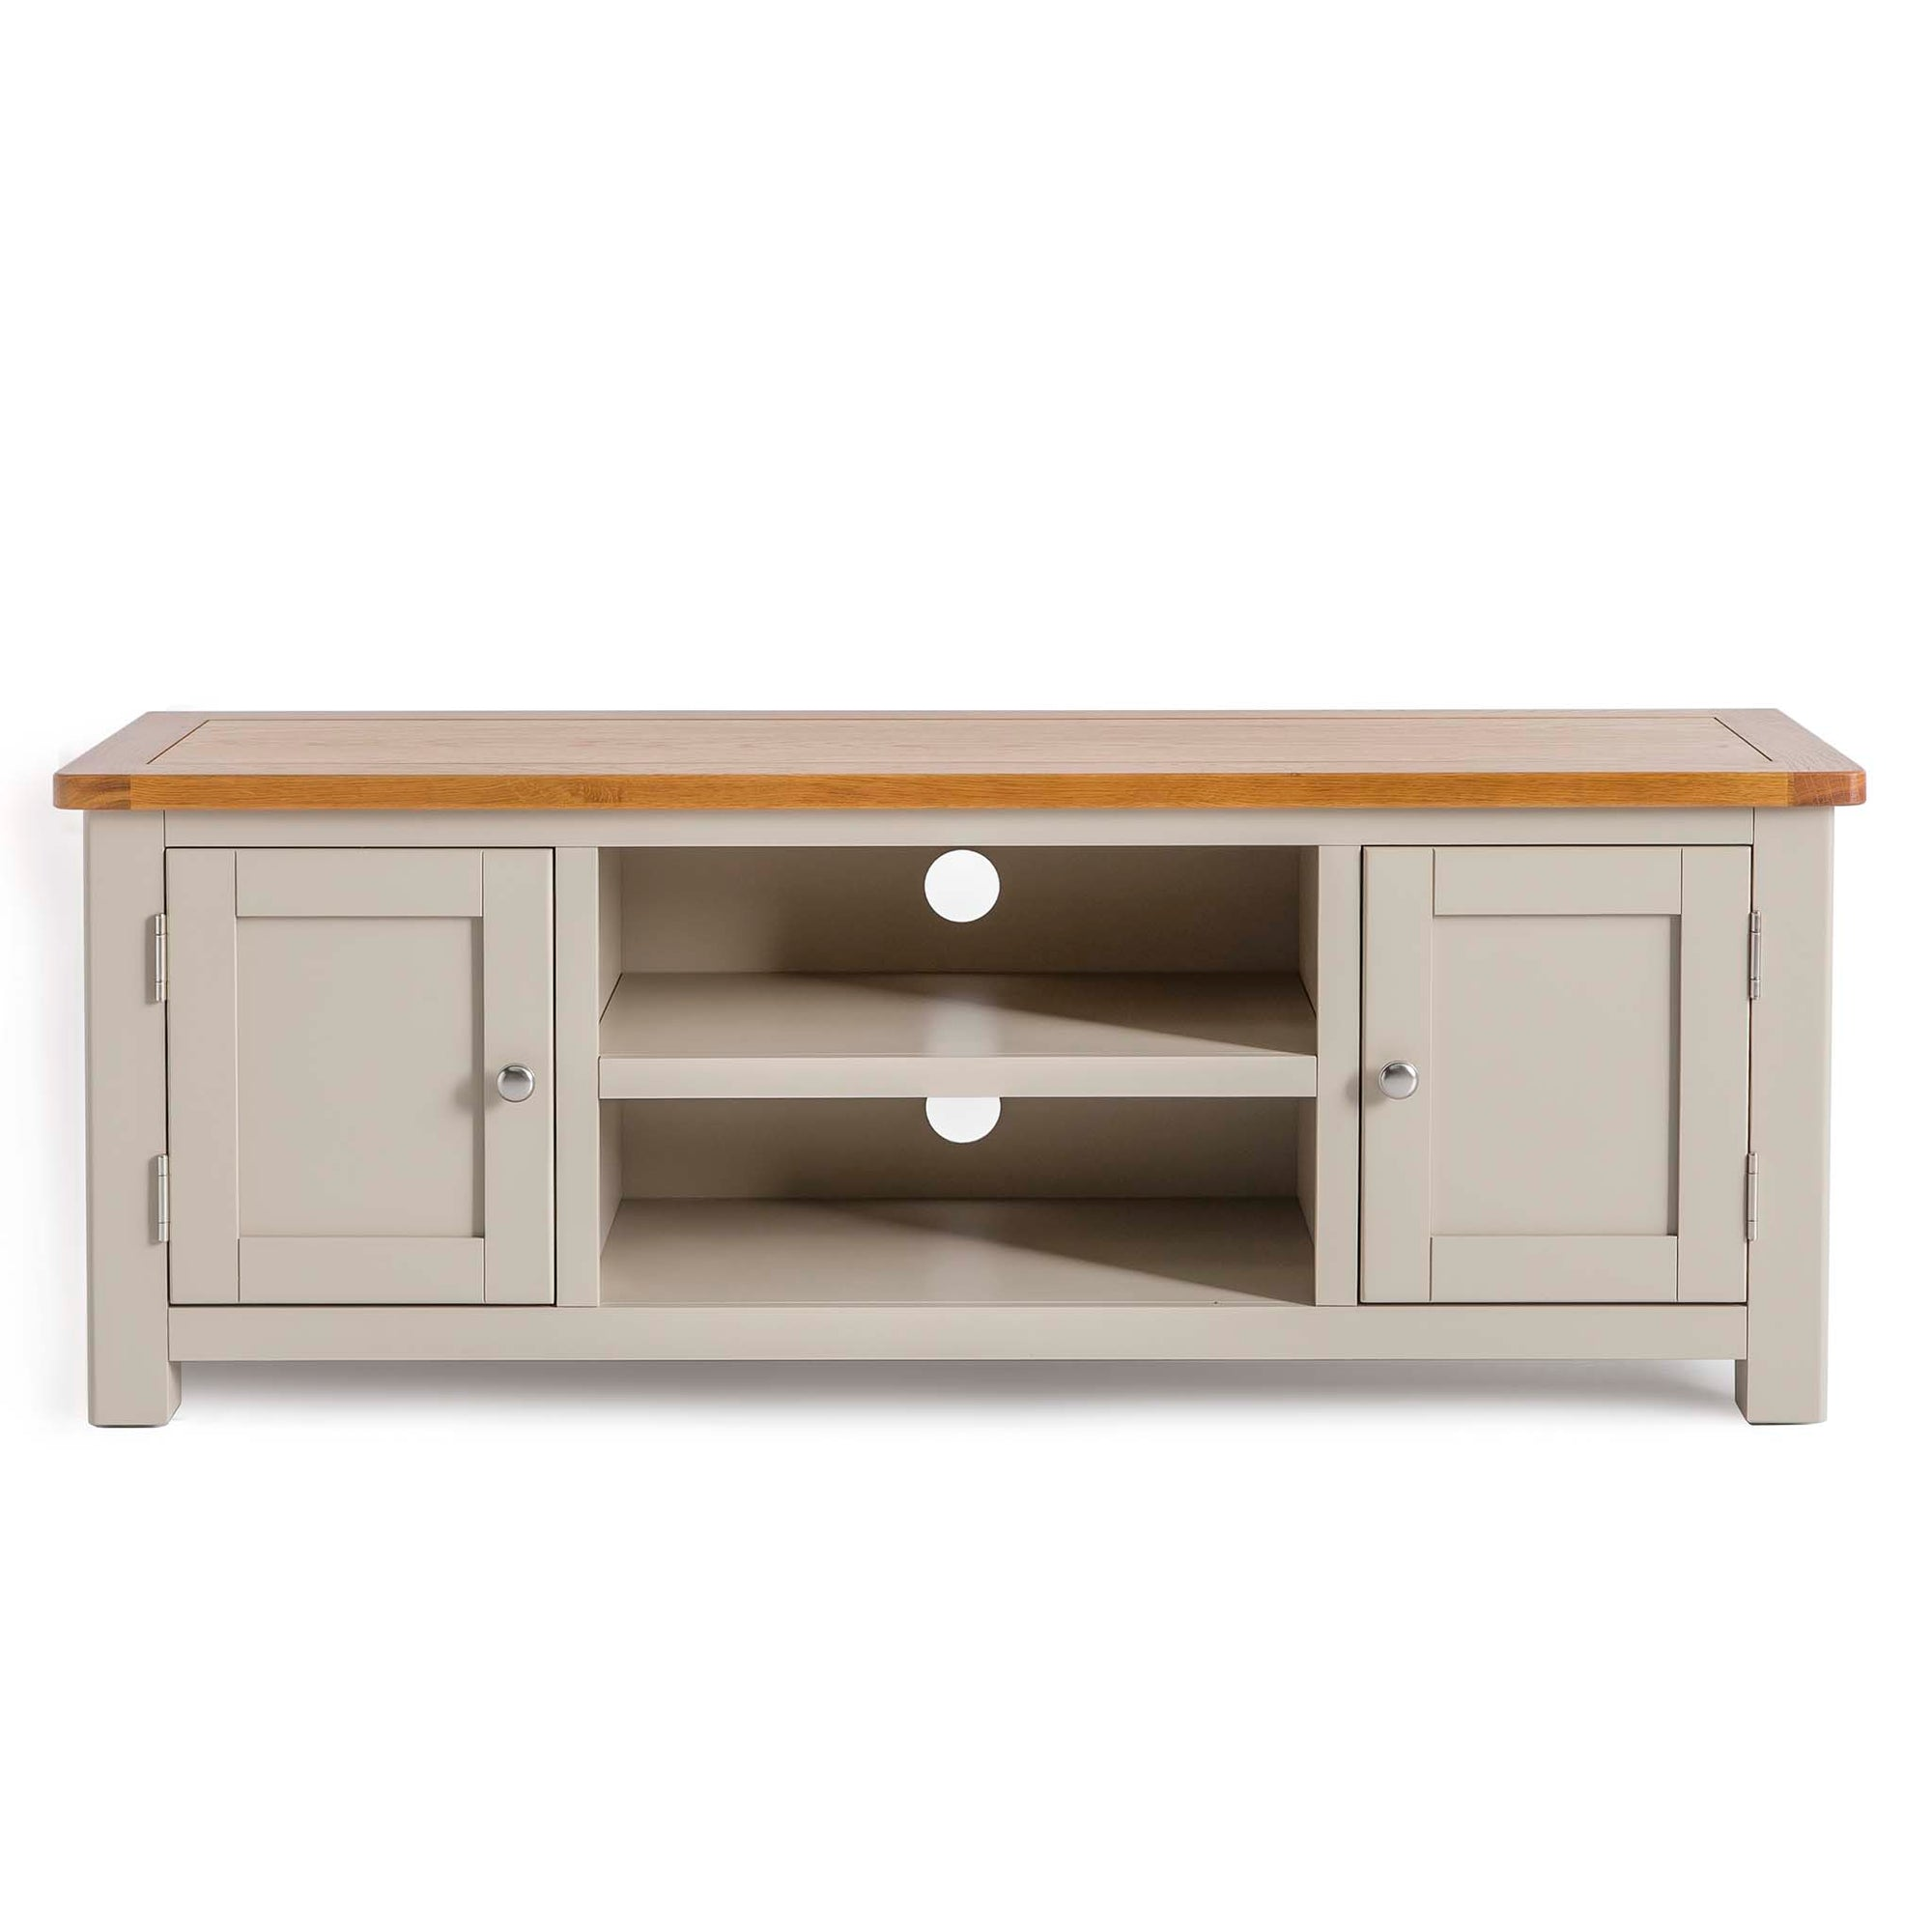 Padstow Stone Grey Large 130cm TV Stand & Storage by Roseland Furniture